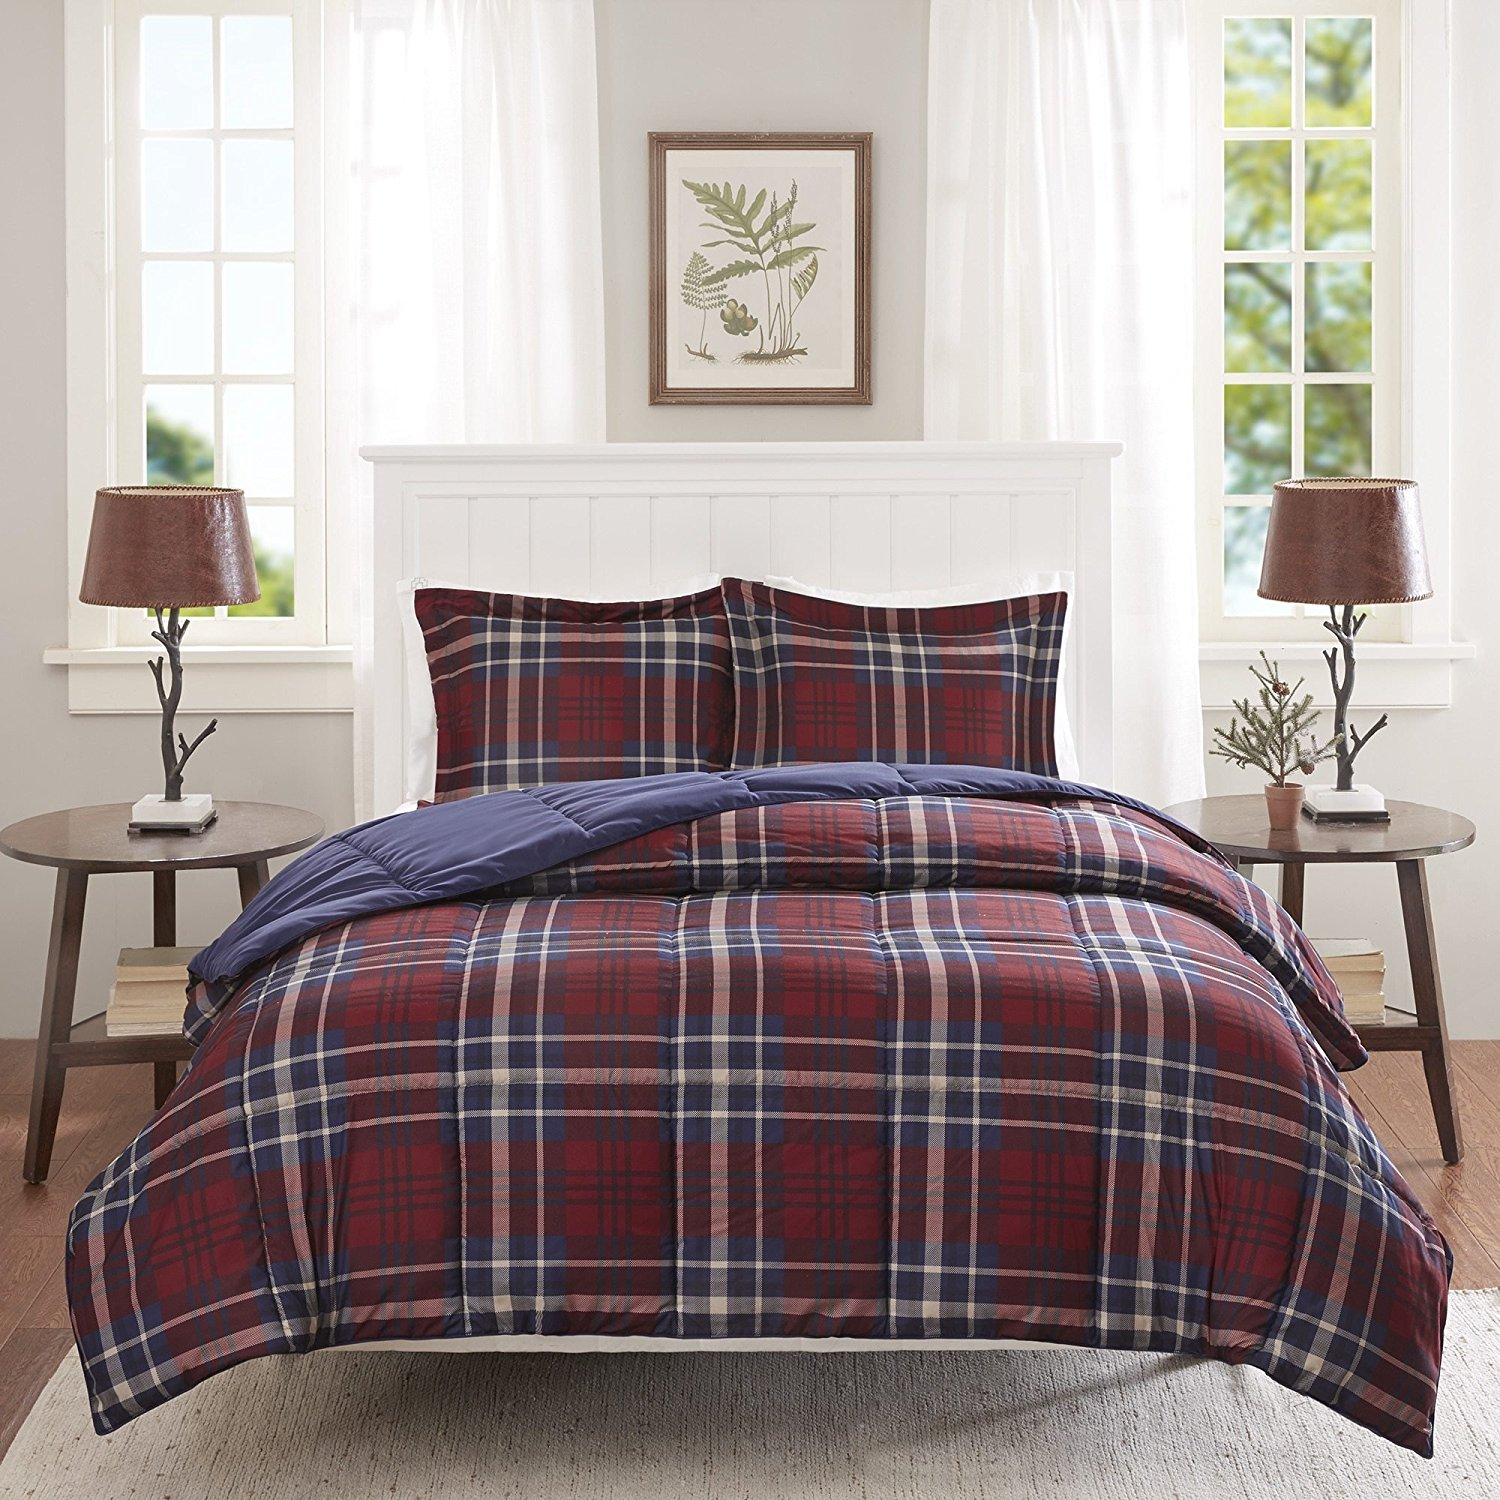 Cheap Plaid Twin Bedding Find Plaid Twin Bedding Deals On